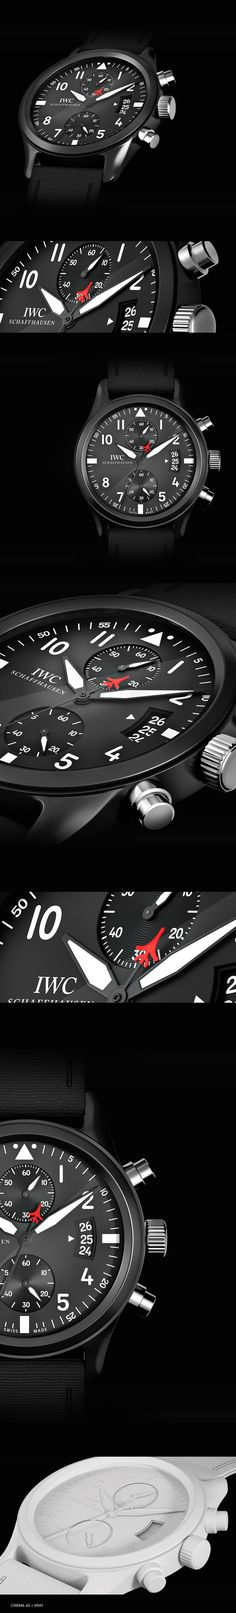 3D IWC Watch on Behance